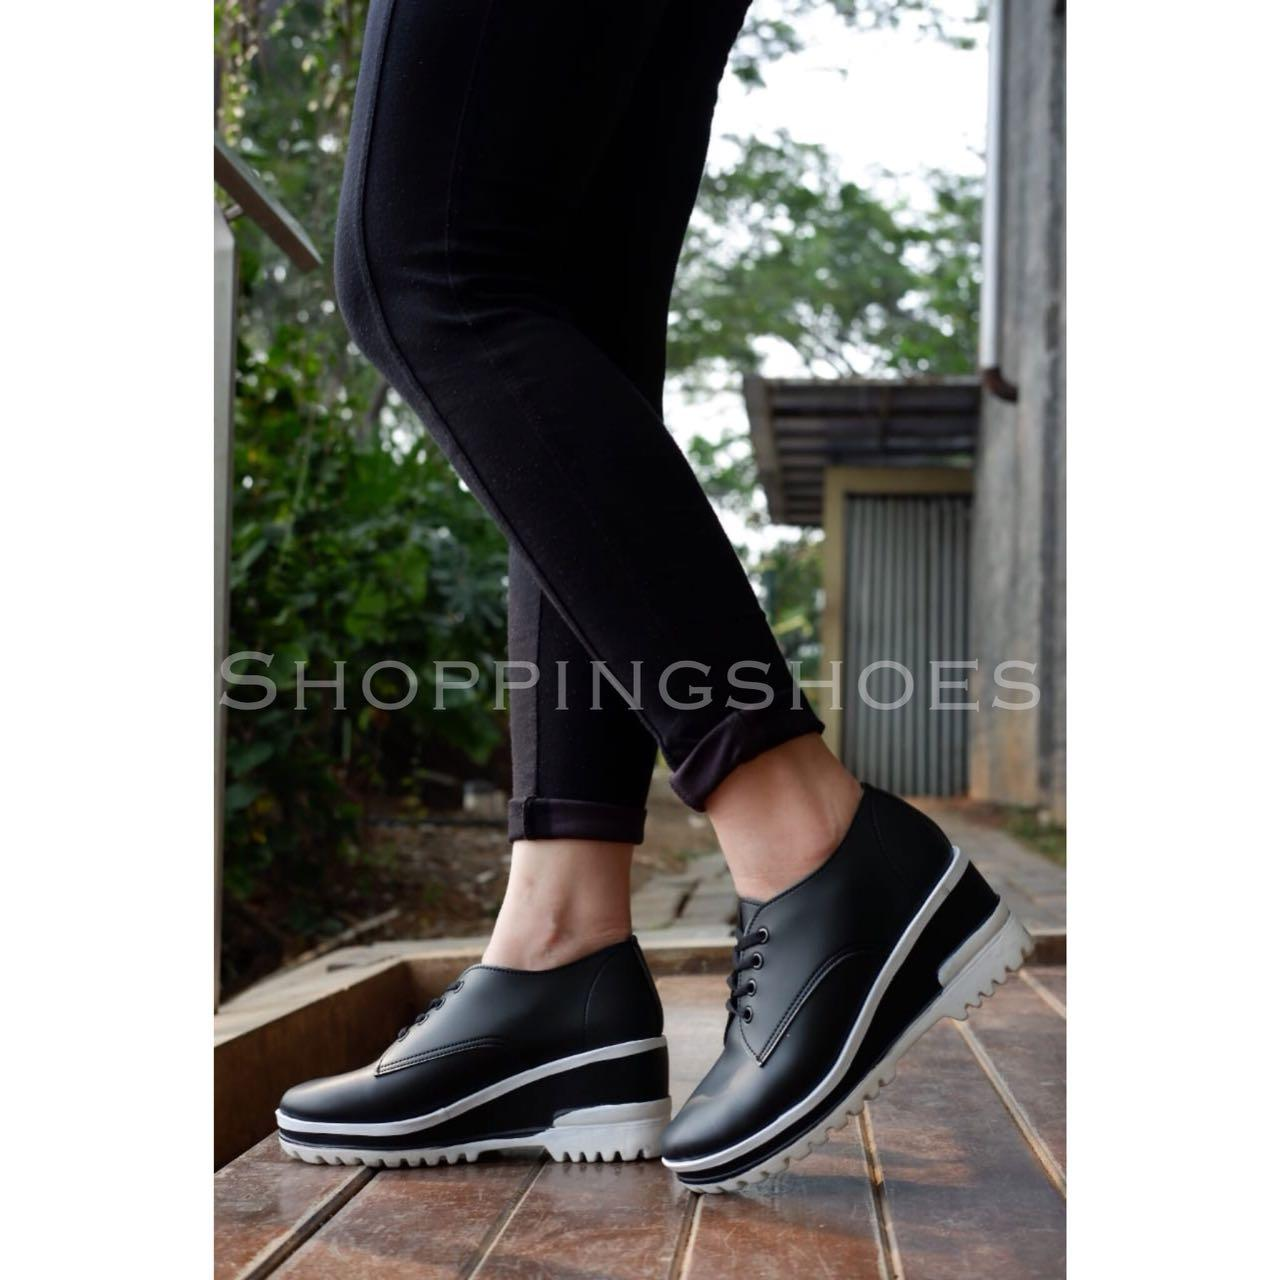 Shoppingshoess realpict Carney Classic White / BLACK